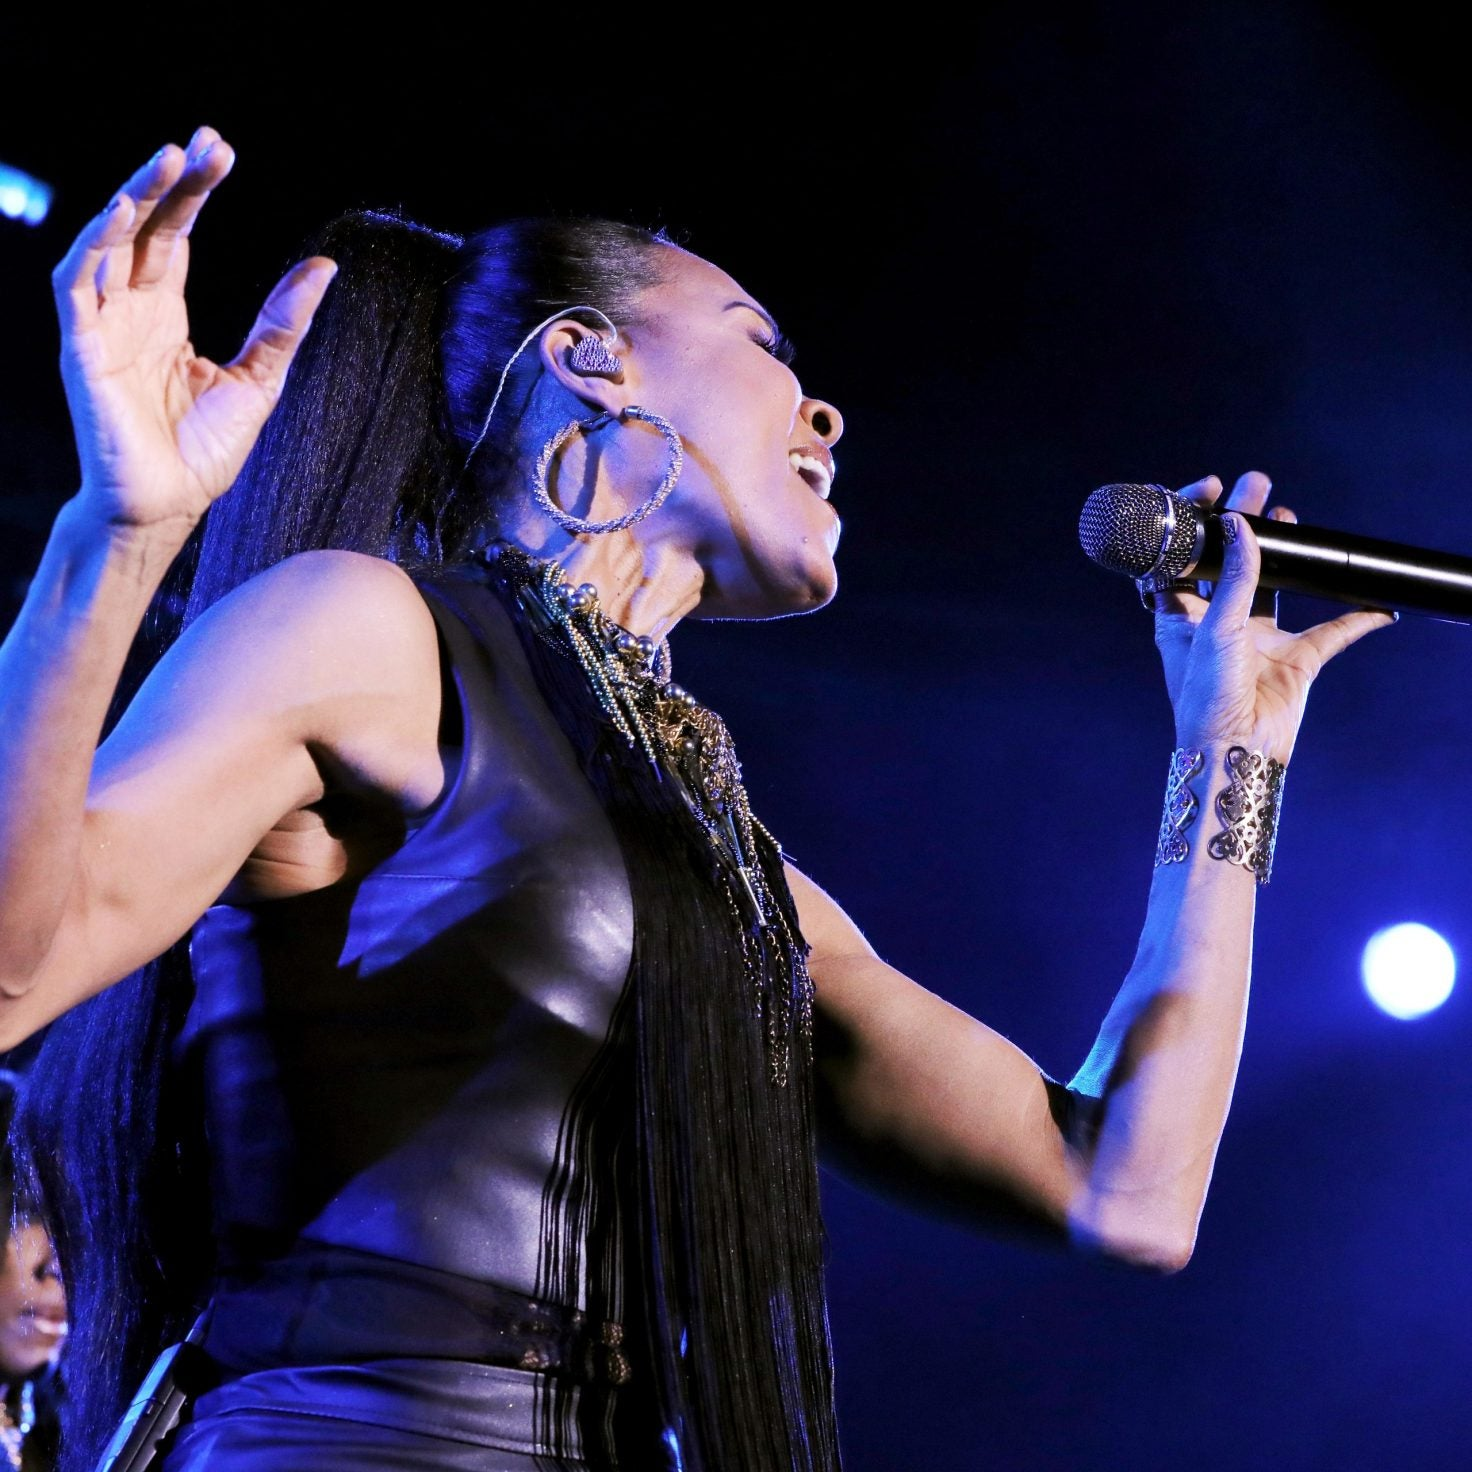 En Vogue's Founding Member Cindy Herron Wants Past Members To Return For 30th Anniversary Celebration